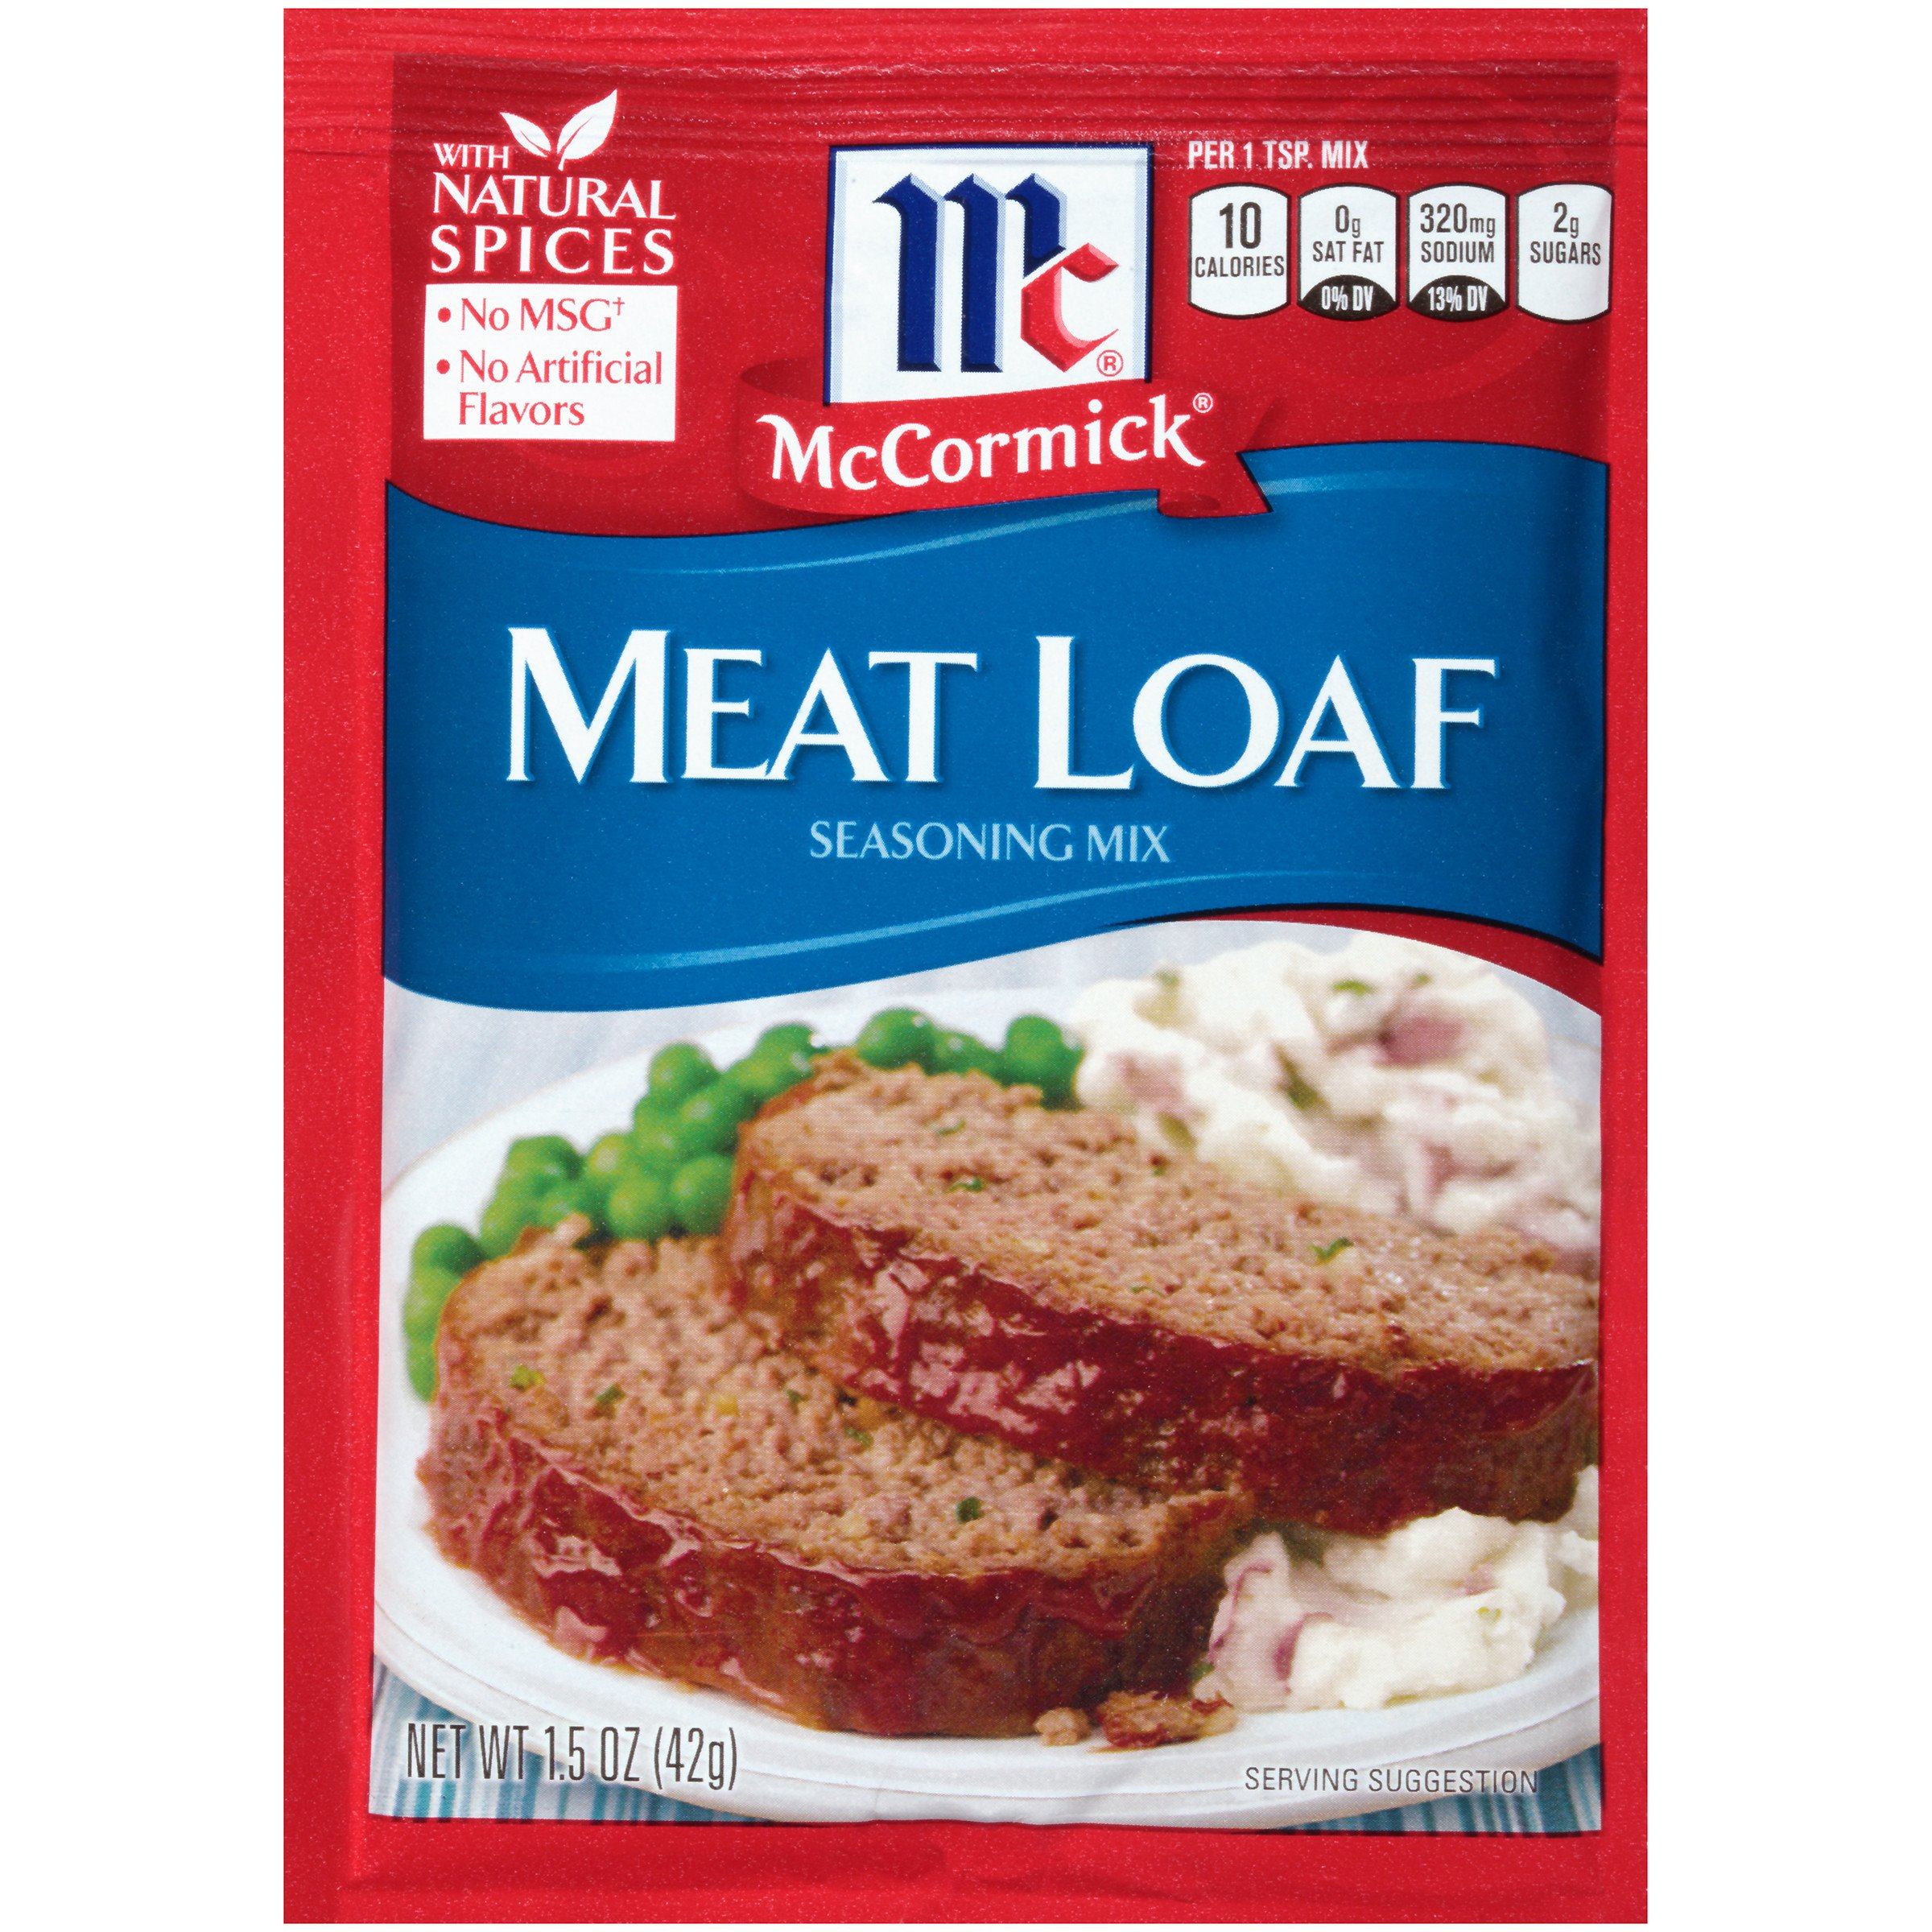 McCormick Meat Loaf Seasoning Mix, 1.5 oz, Delicious Blend of Onion, Paprika, Basil, Mustard, Sage, Garlic and Black Pepper, Works Great with Ground Beef or Turkey